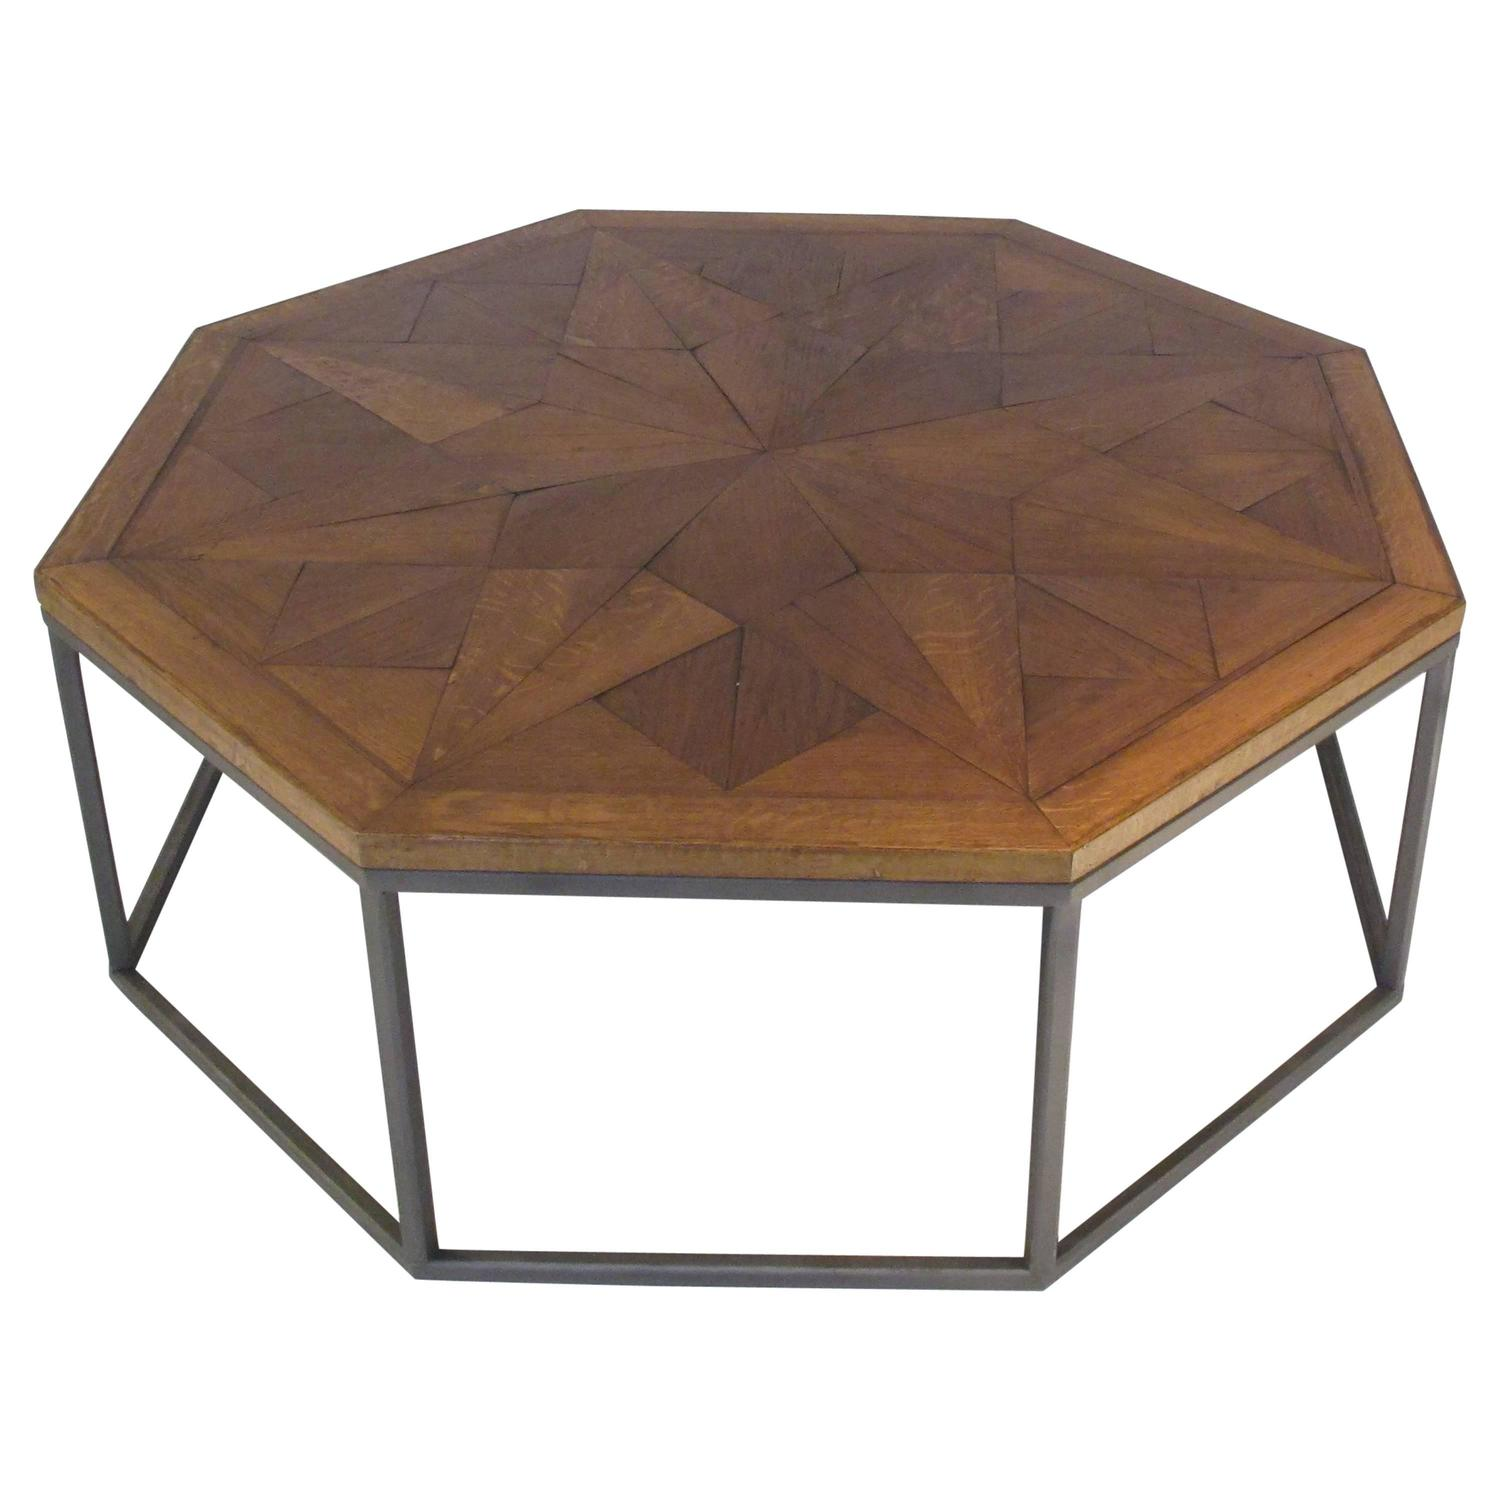 bespoke octagon coffee table with a 19th century oak top